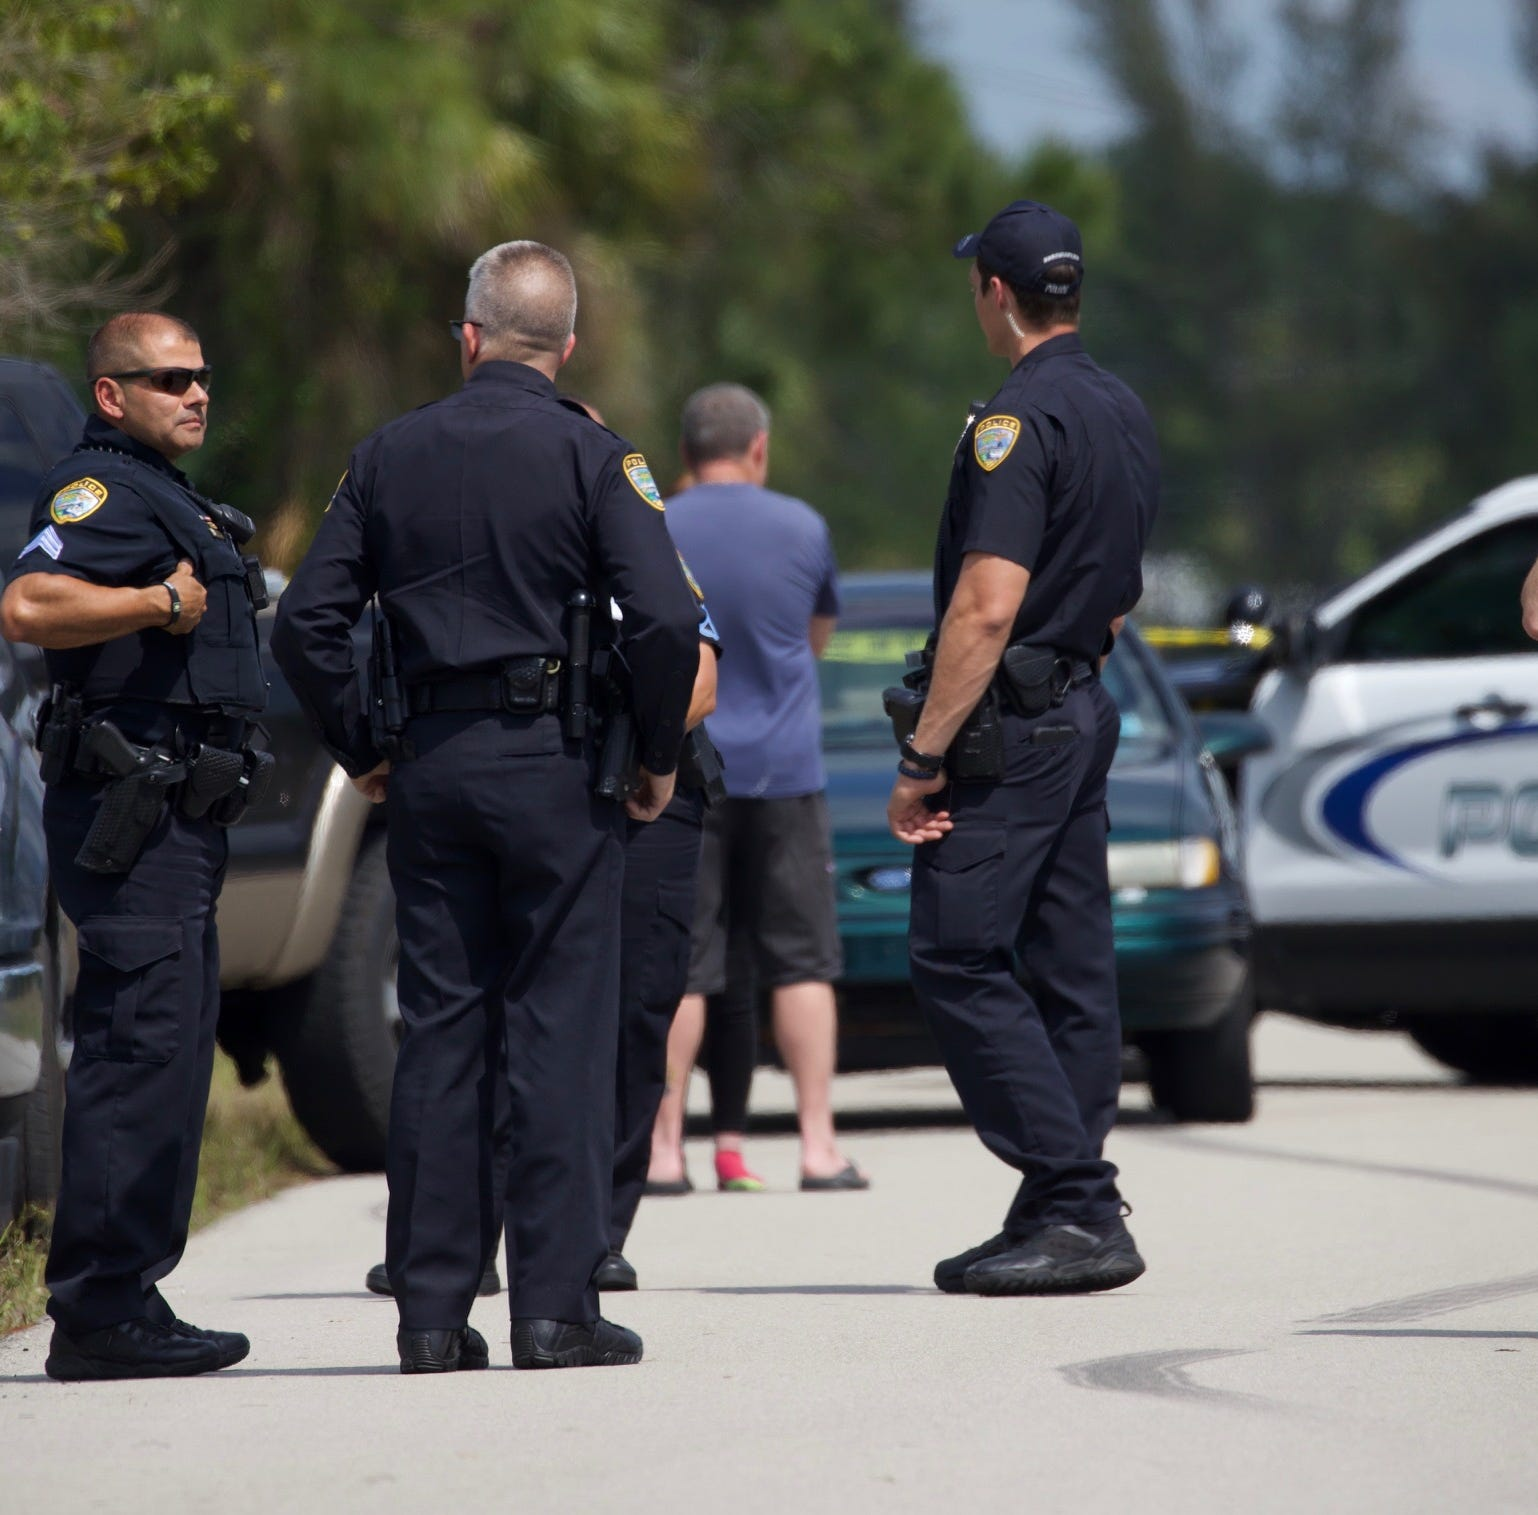 Cape Coral police investigating 'shooting incident'